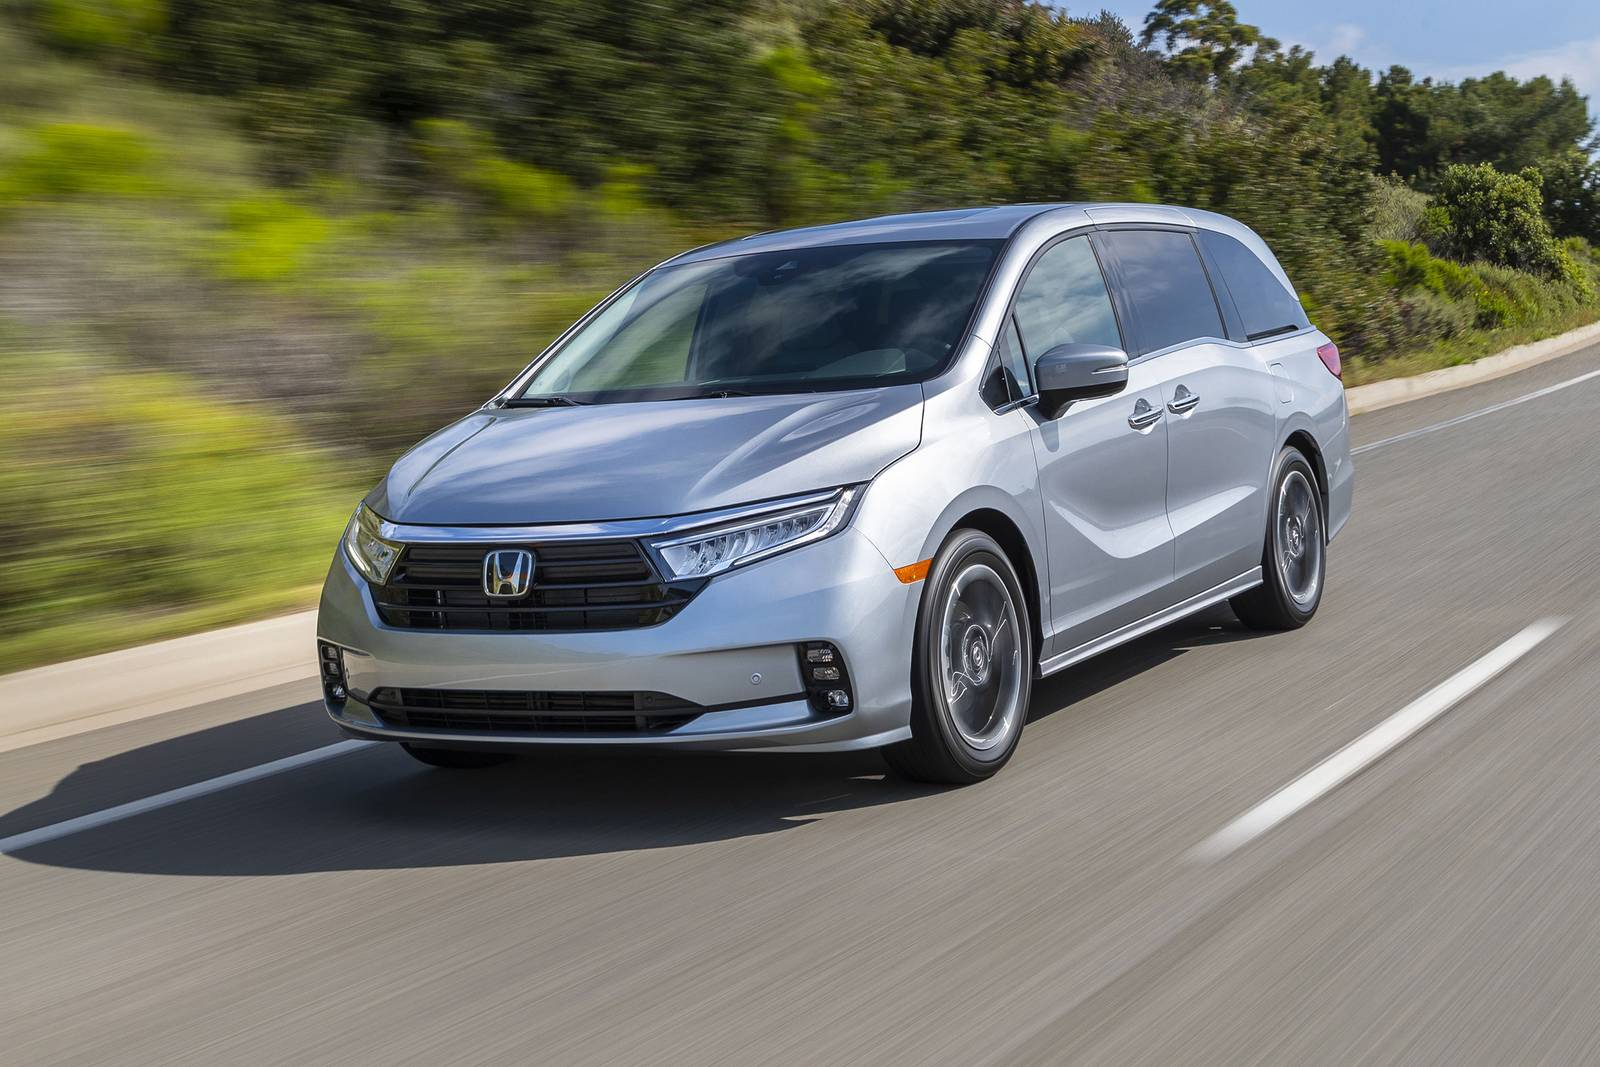 2022 honda odyssey prices reviews and pictures edmunds